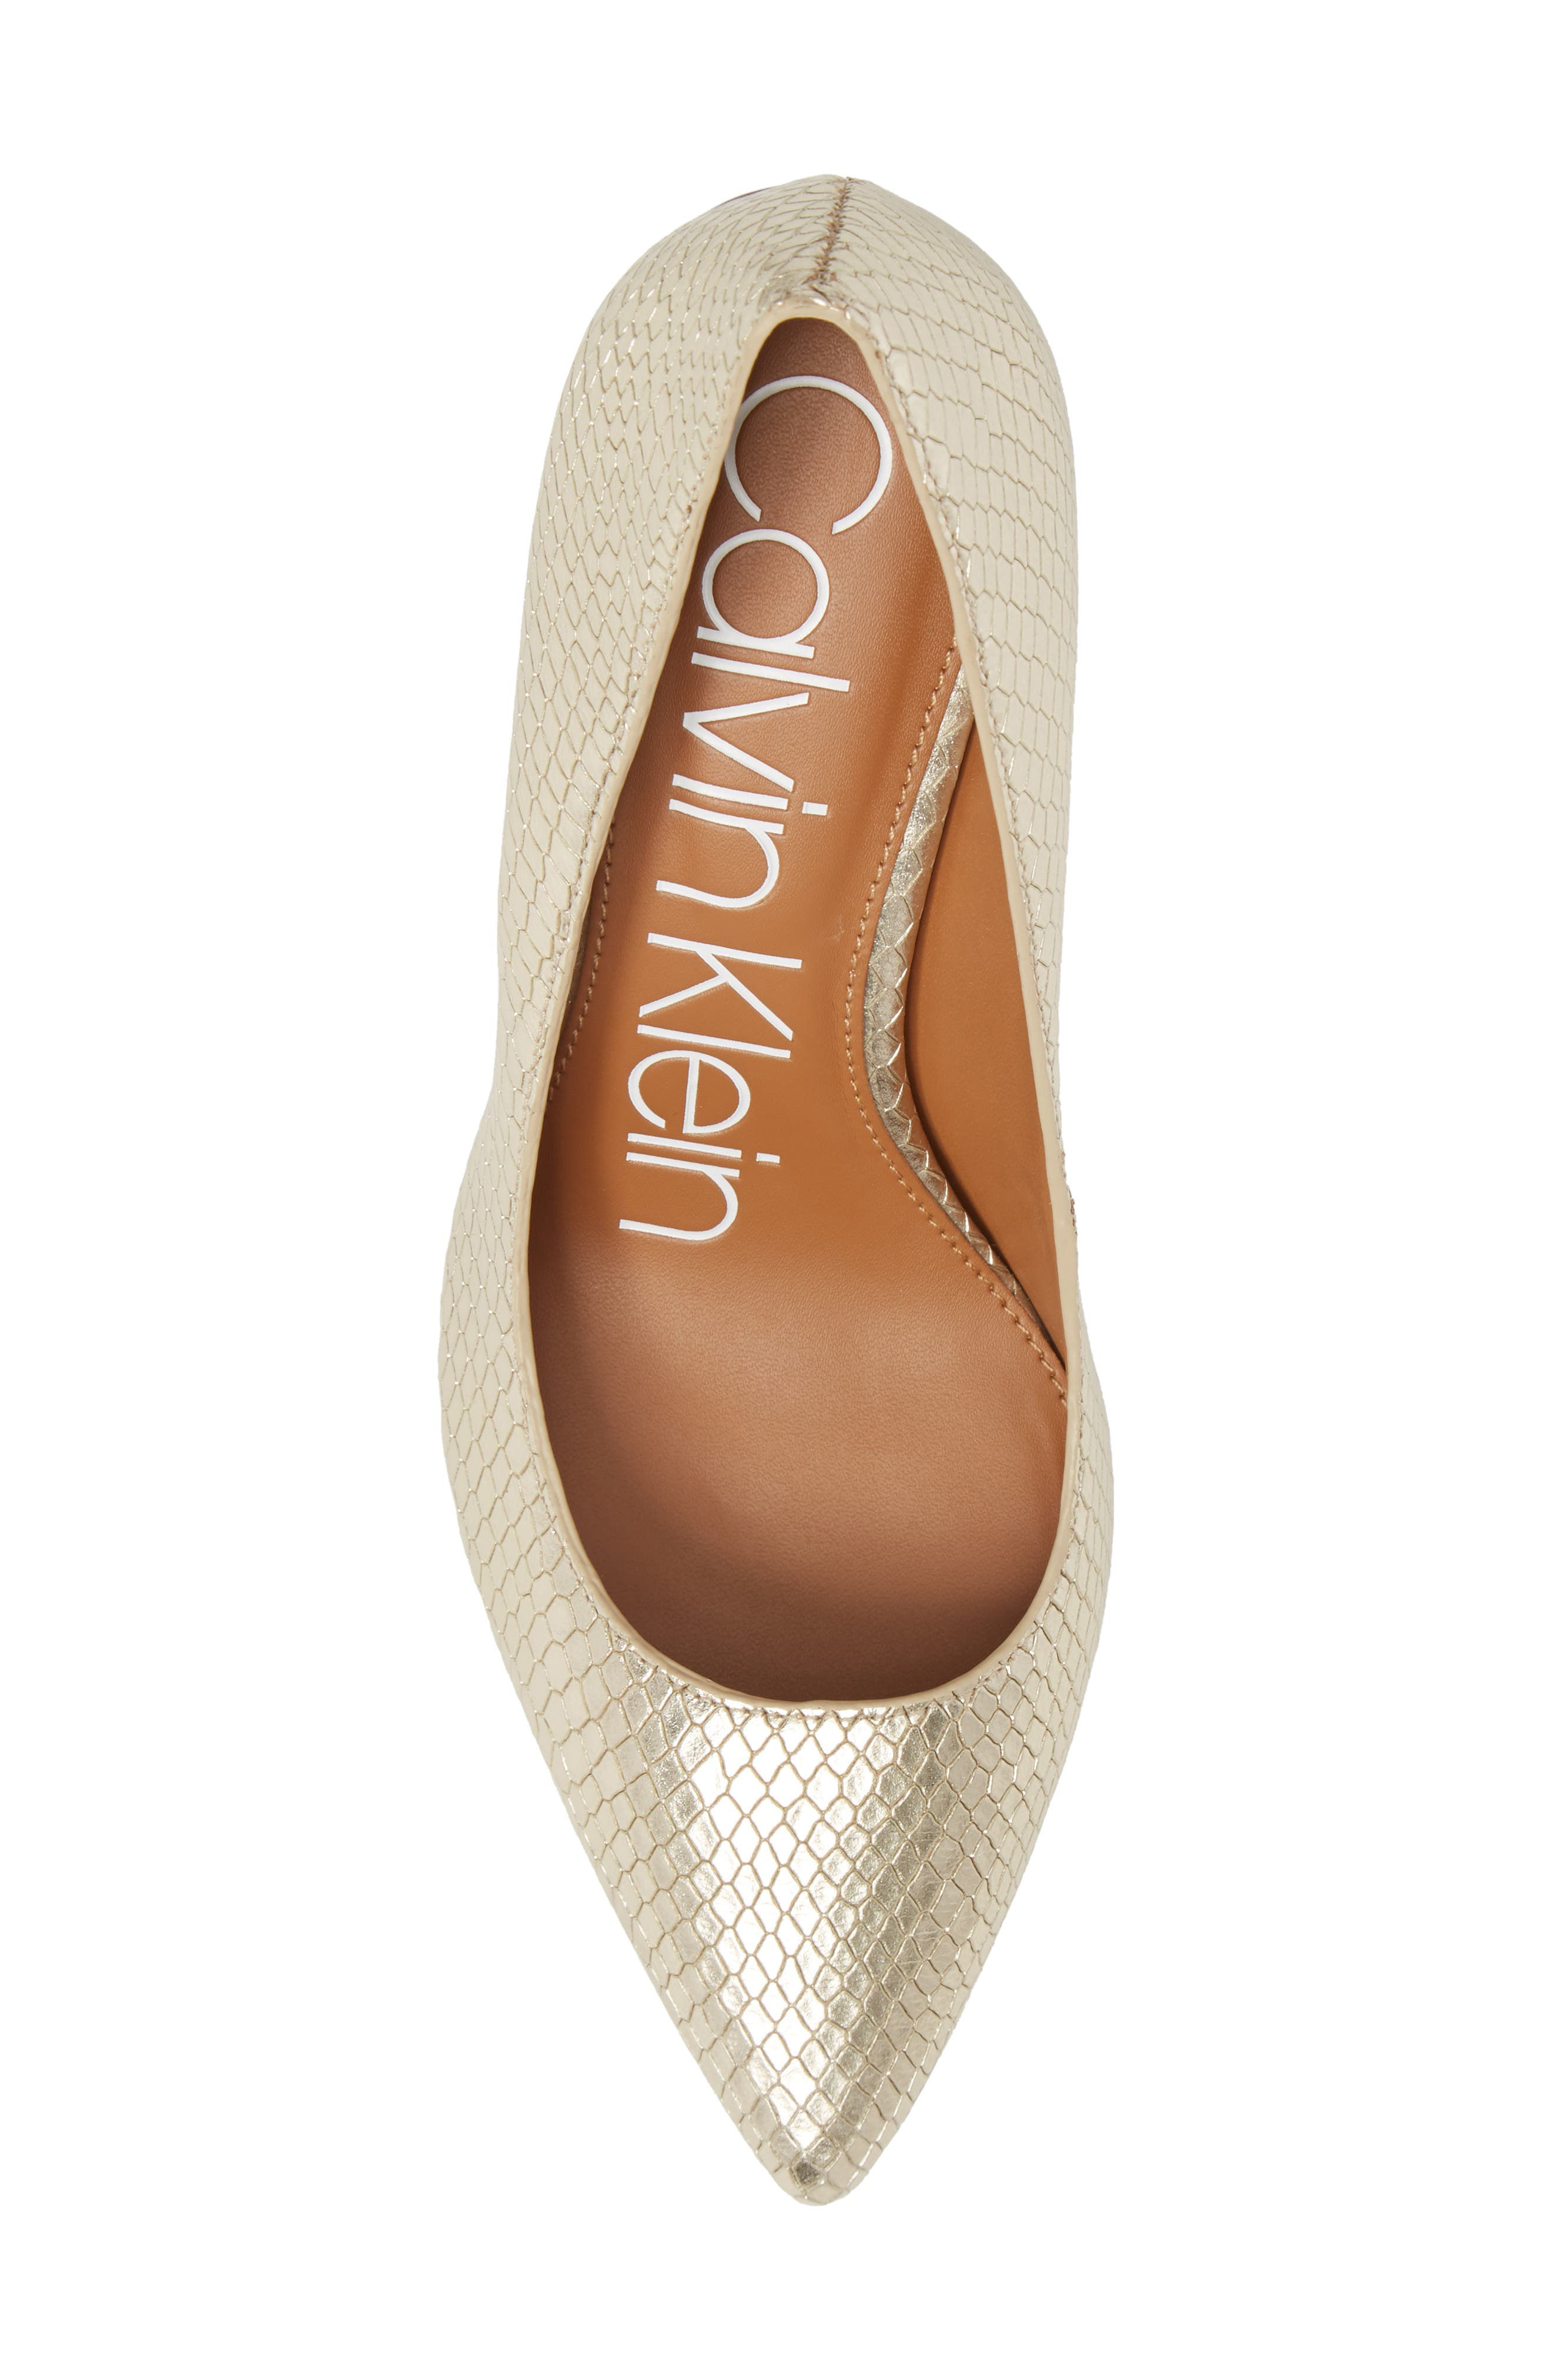 CALVIN KLEIN, 'Gayle' Pointy Toe Pump, Alternate thumbnail 5, color, SOFT GOLD LEATHER